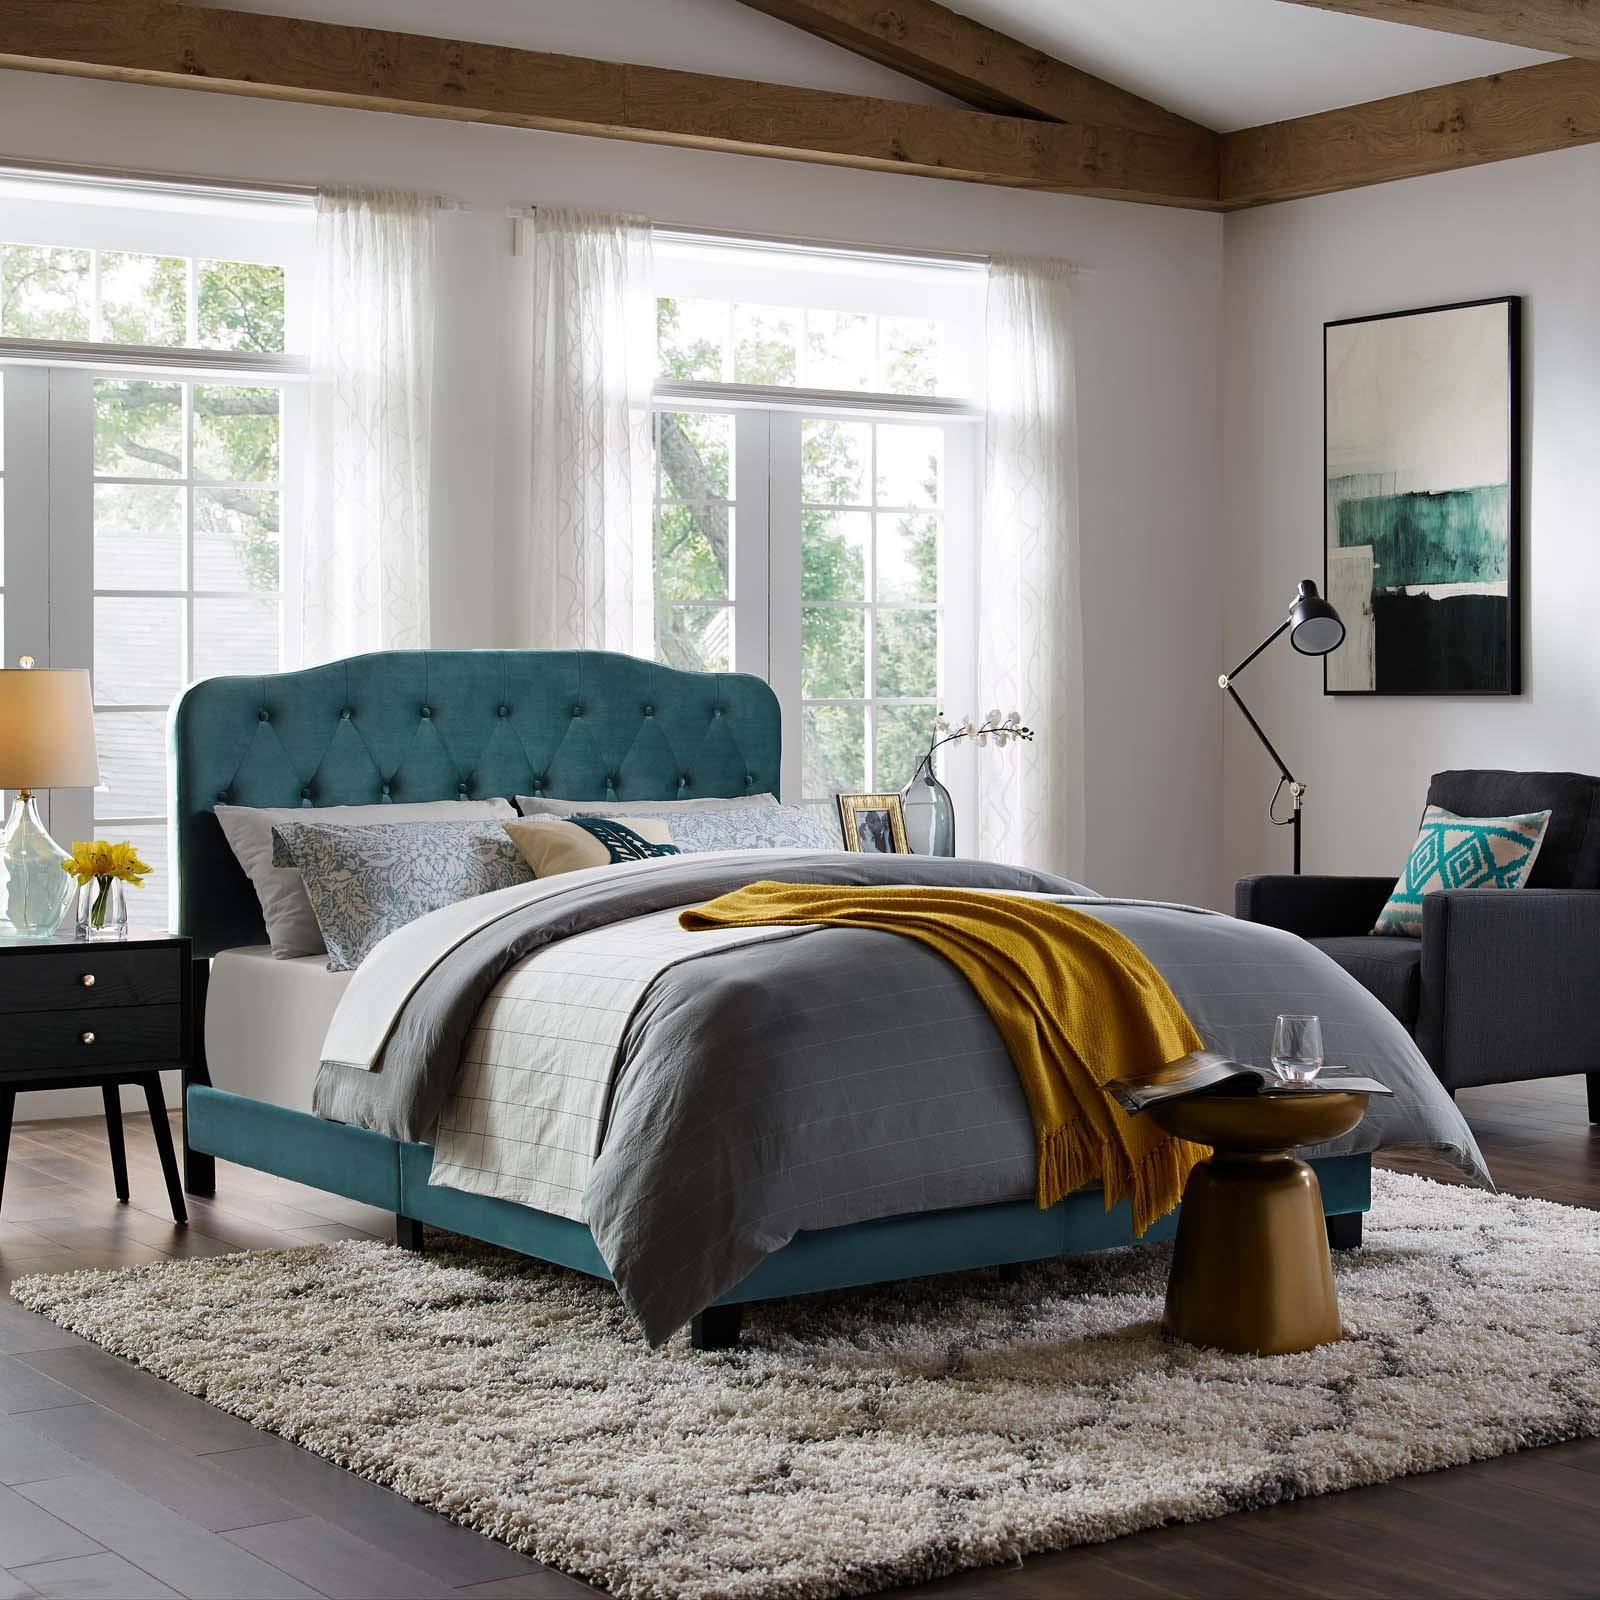 Modway Amelia Tufted Velvet Upholstered King Bed in Sea Blue by Modway